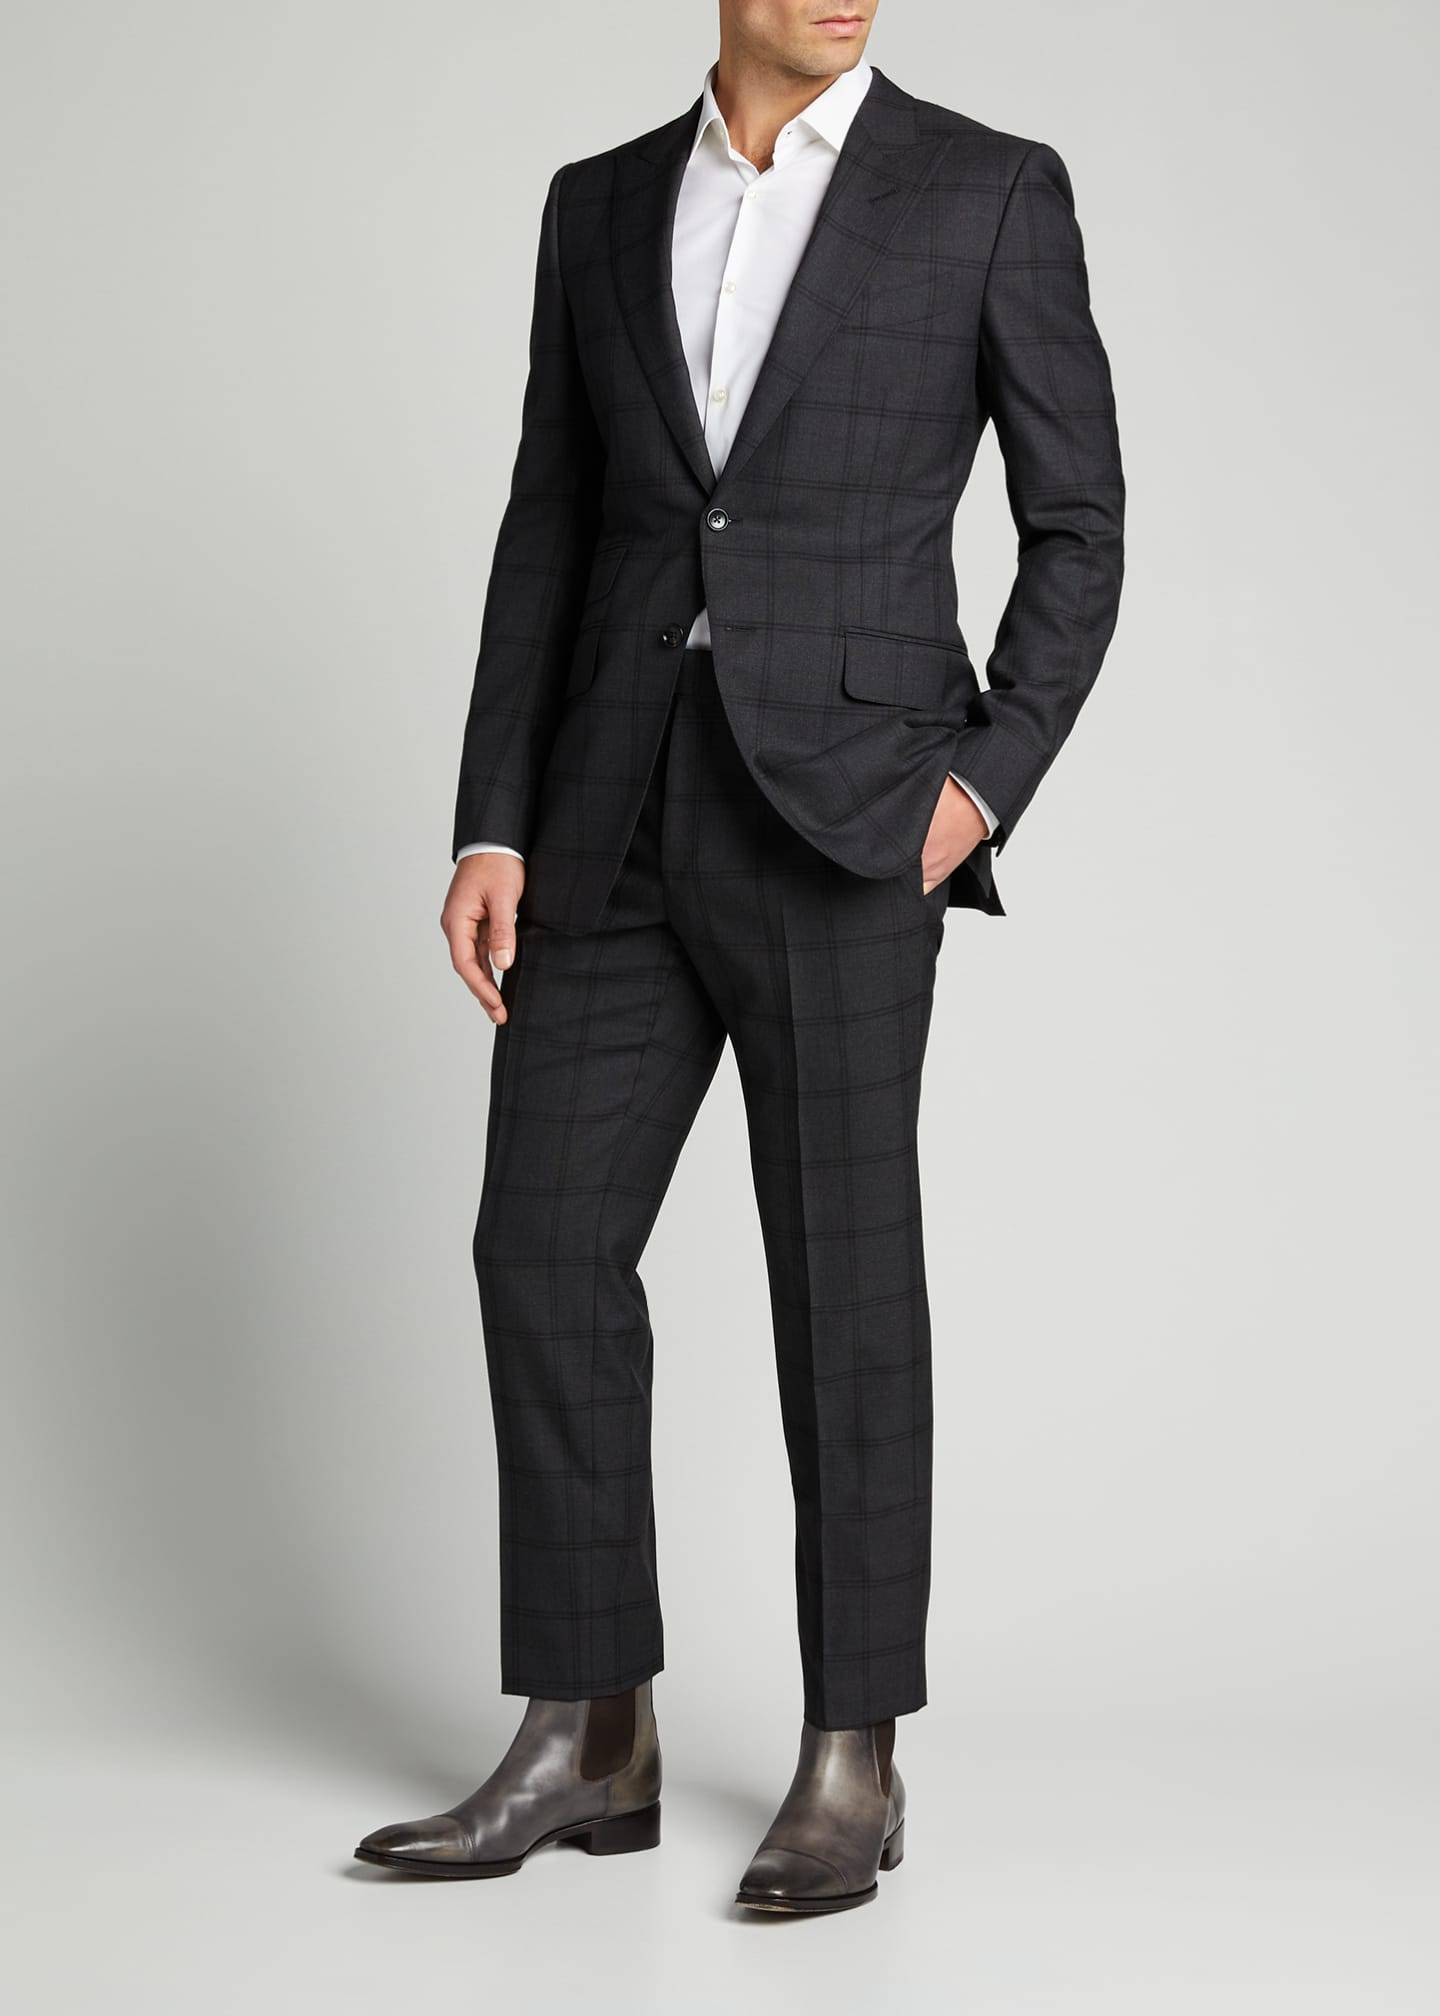 TOM FORD Men's O'Connor Overcheck Two-Piece Suit